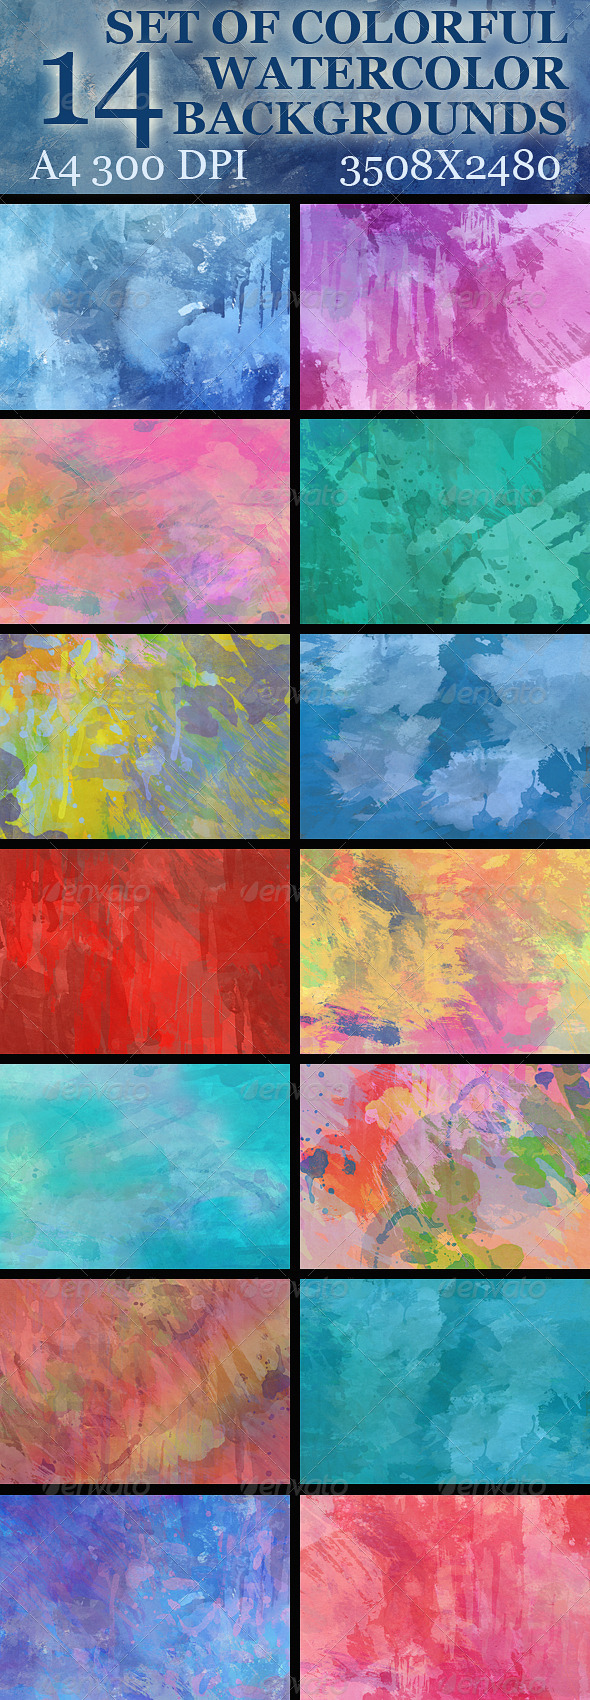 GraphicRiver Set of 14th Watercolor Backgrounds 4920142